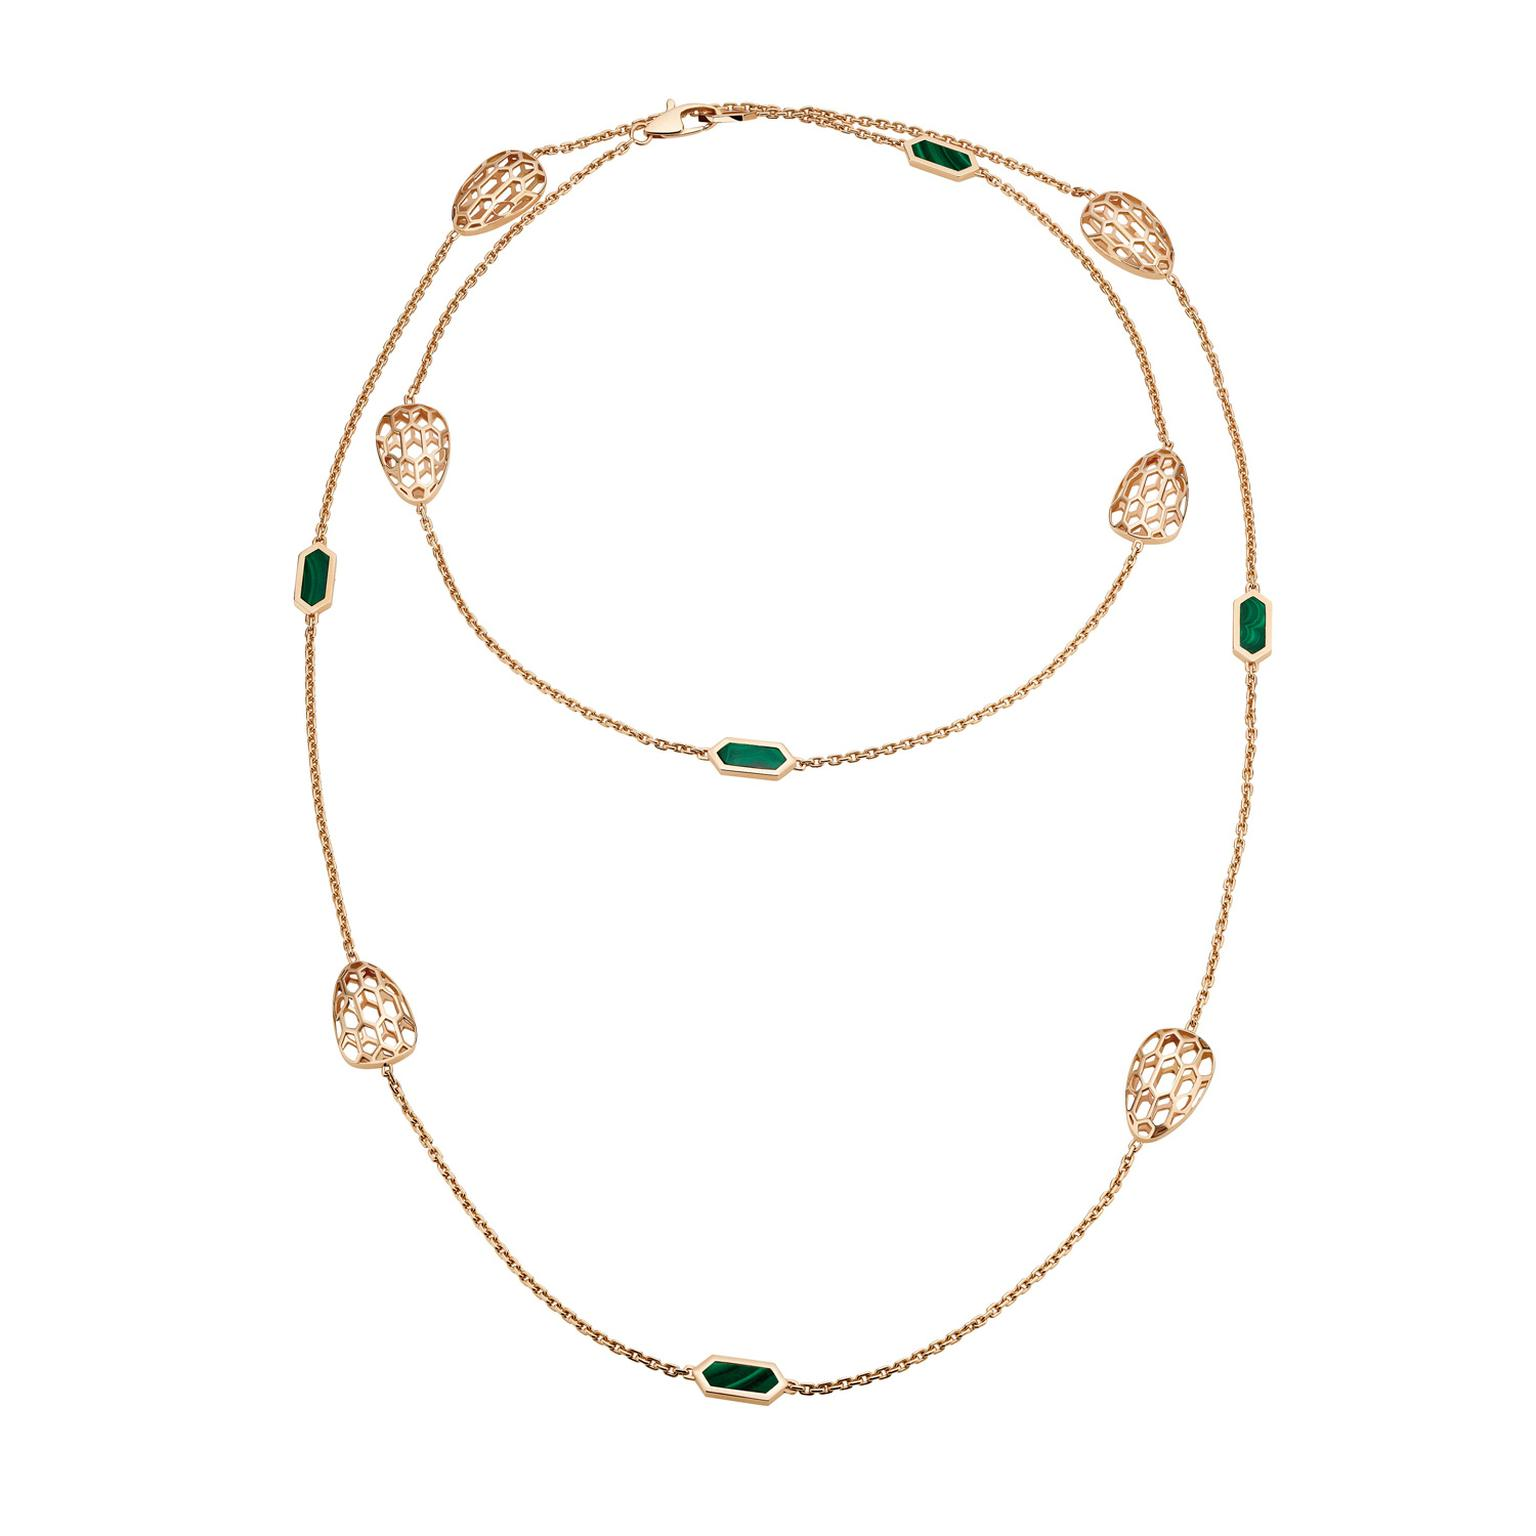 Bulgari Serpenti Seduttori sautoir necklace in rose gold with malachites